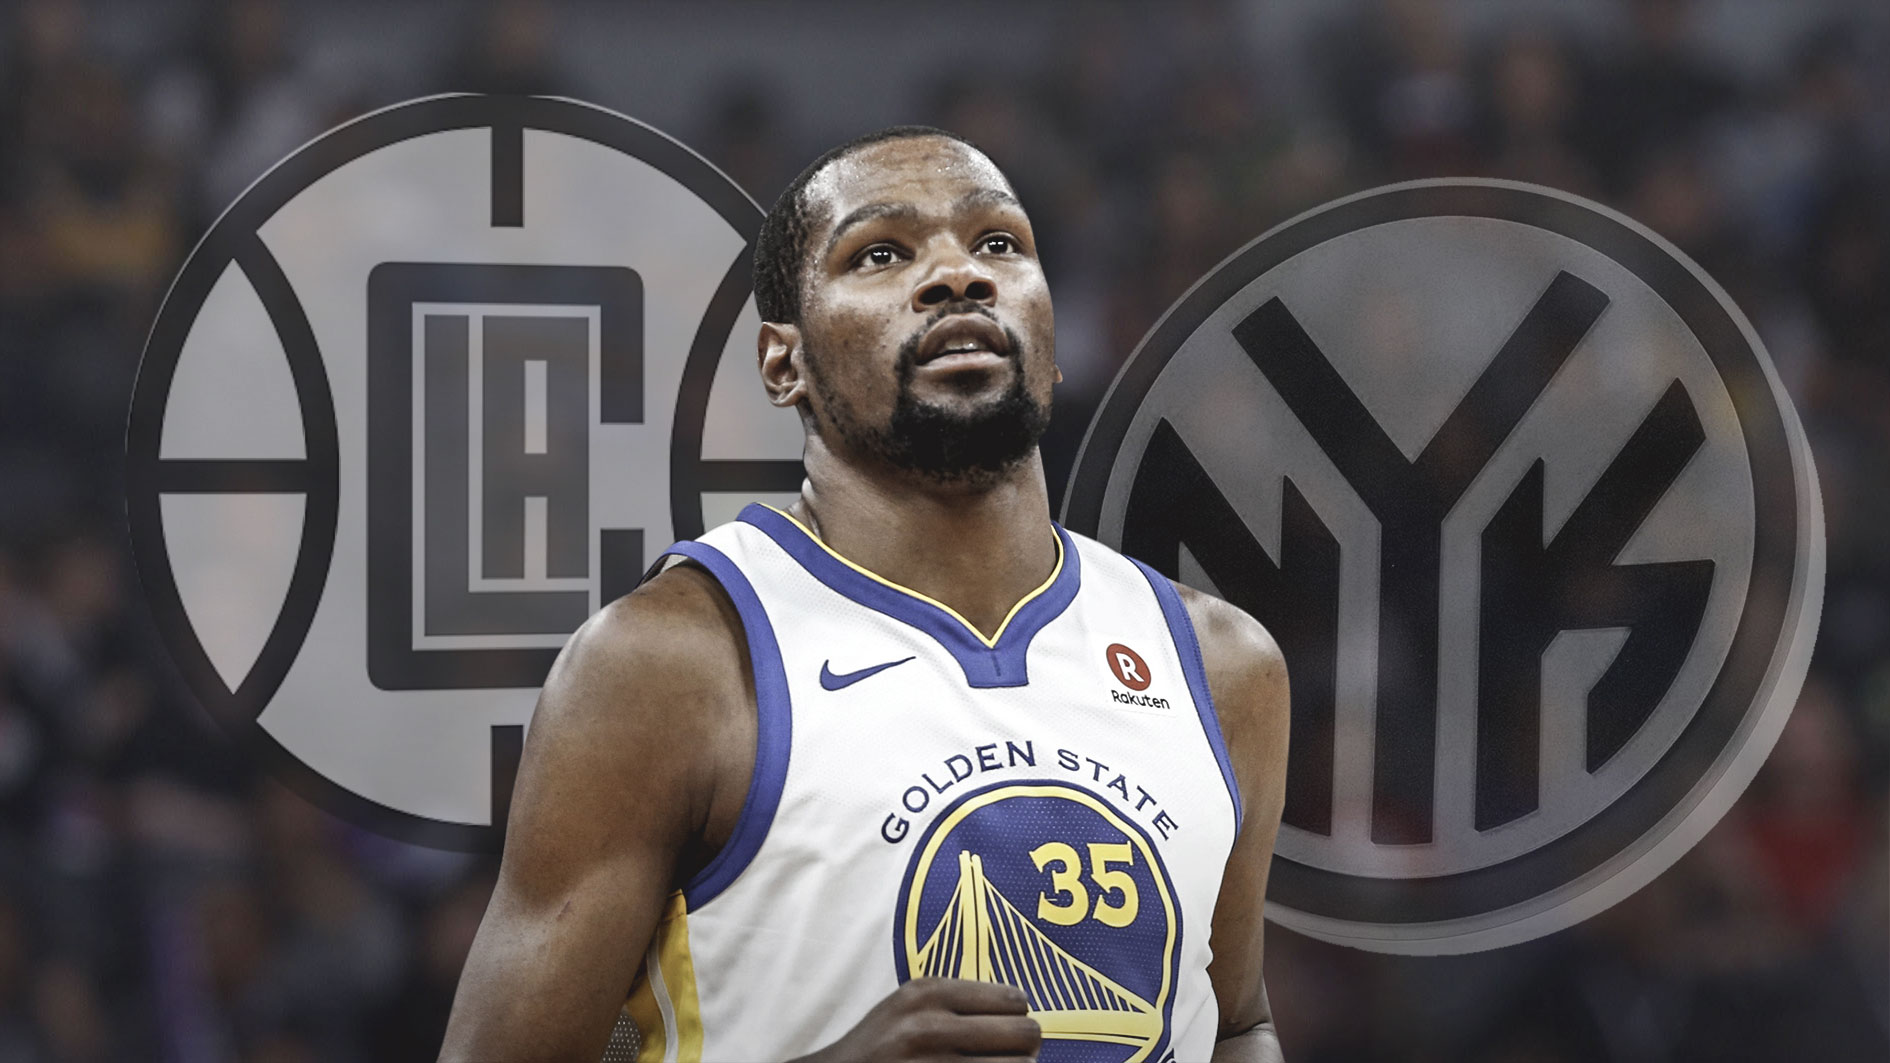 Kevin-Durant-Clippers-Knicks-Warriors.jpg